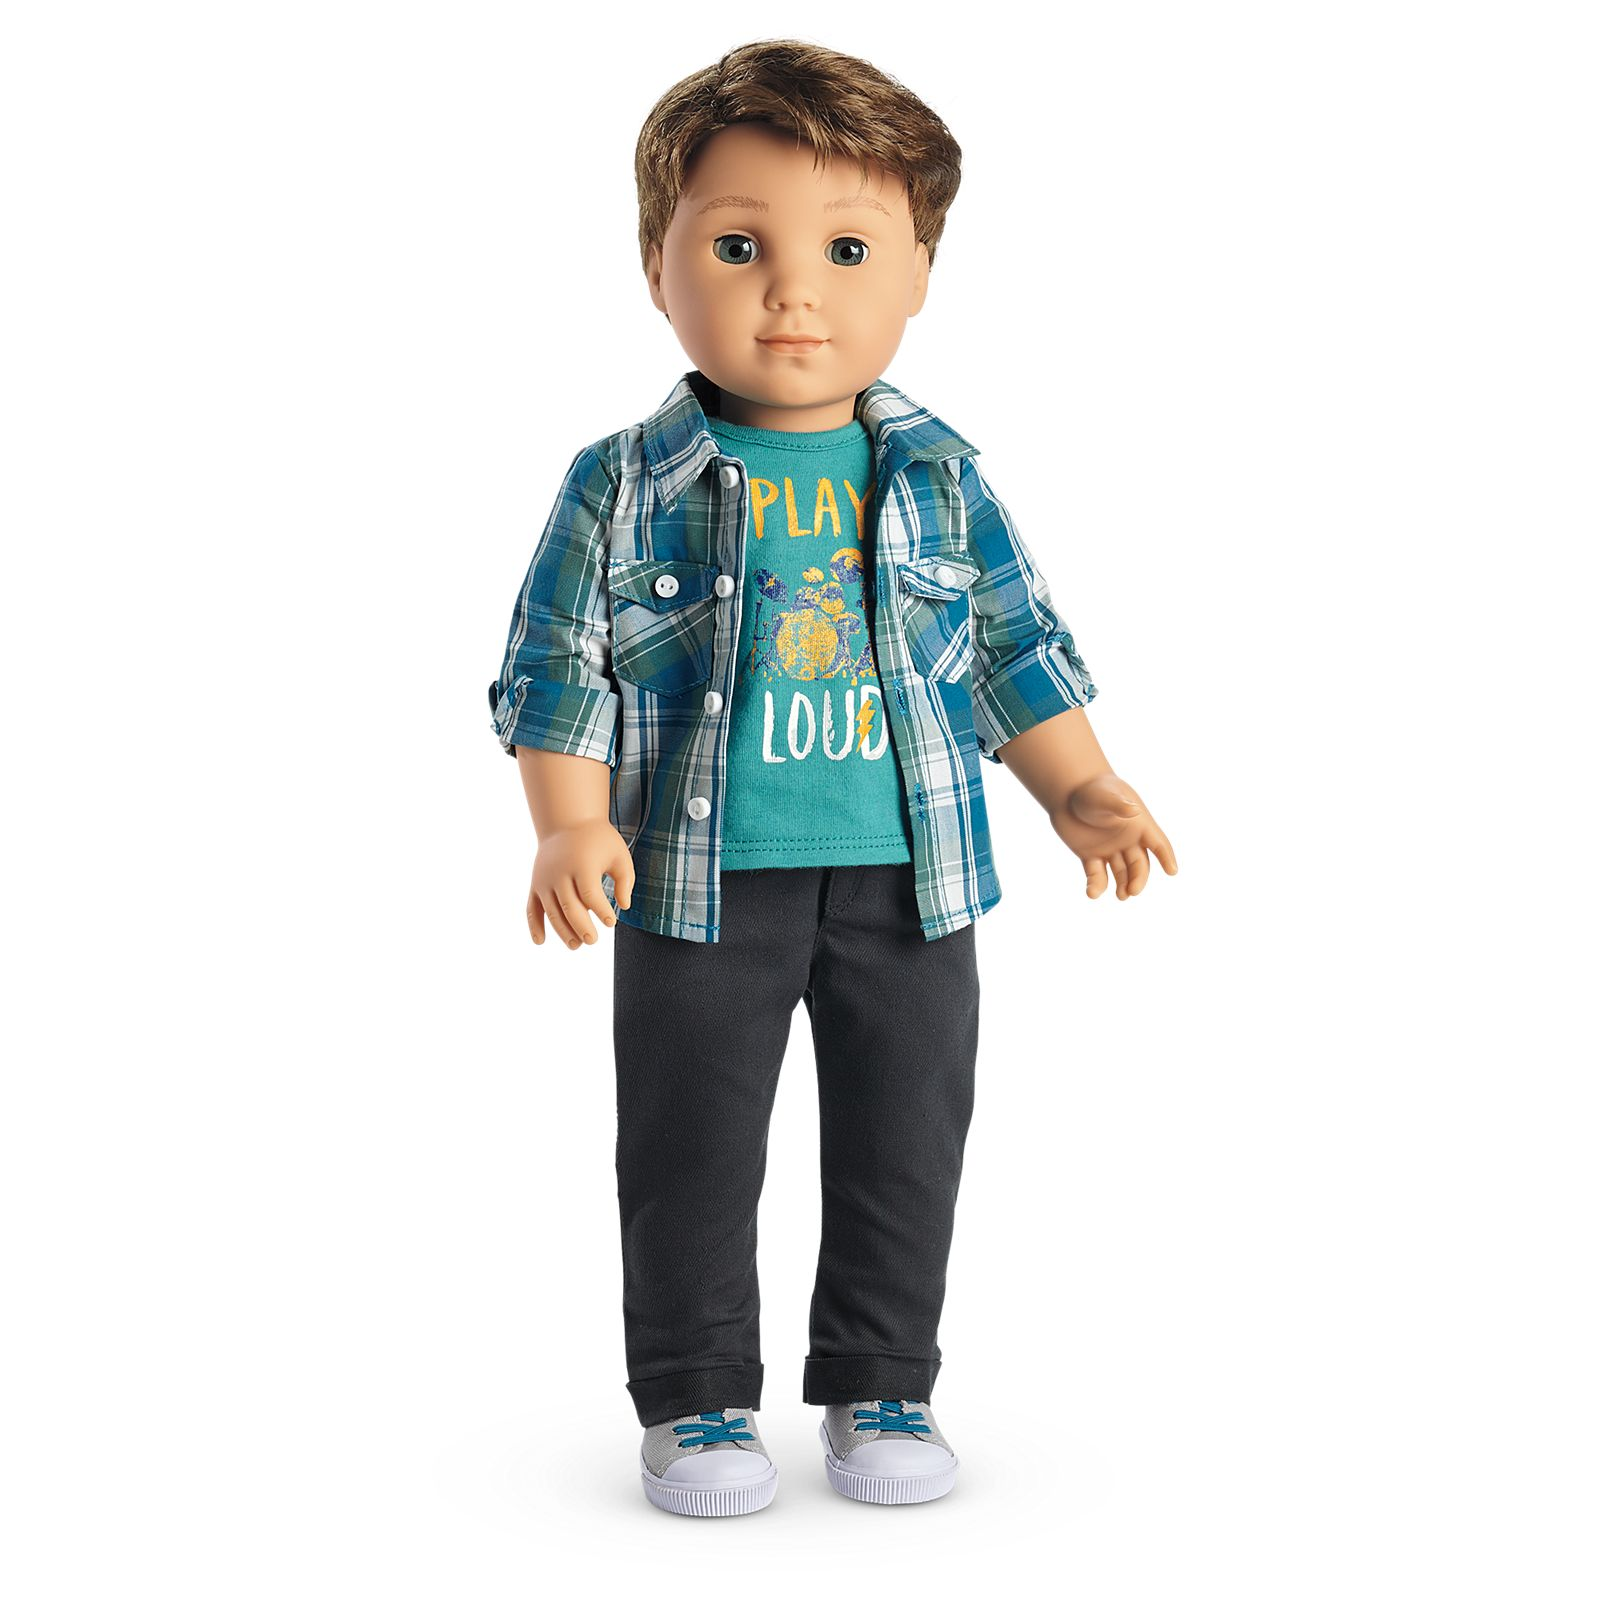 American Girl Truly Me Boy Doll Meet Outfit Pants Off NEW in Box Doll